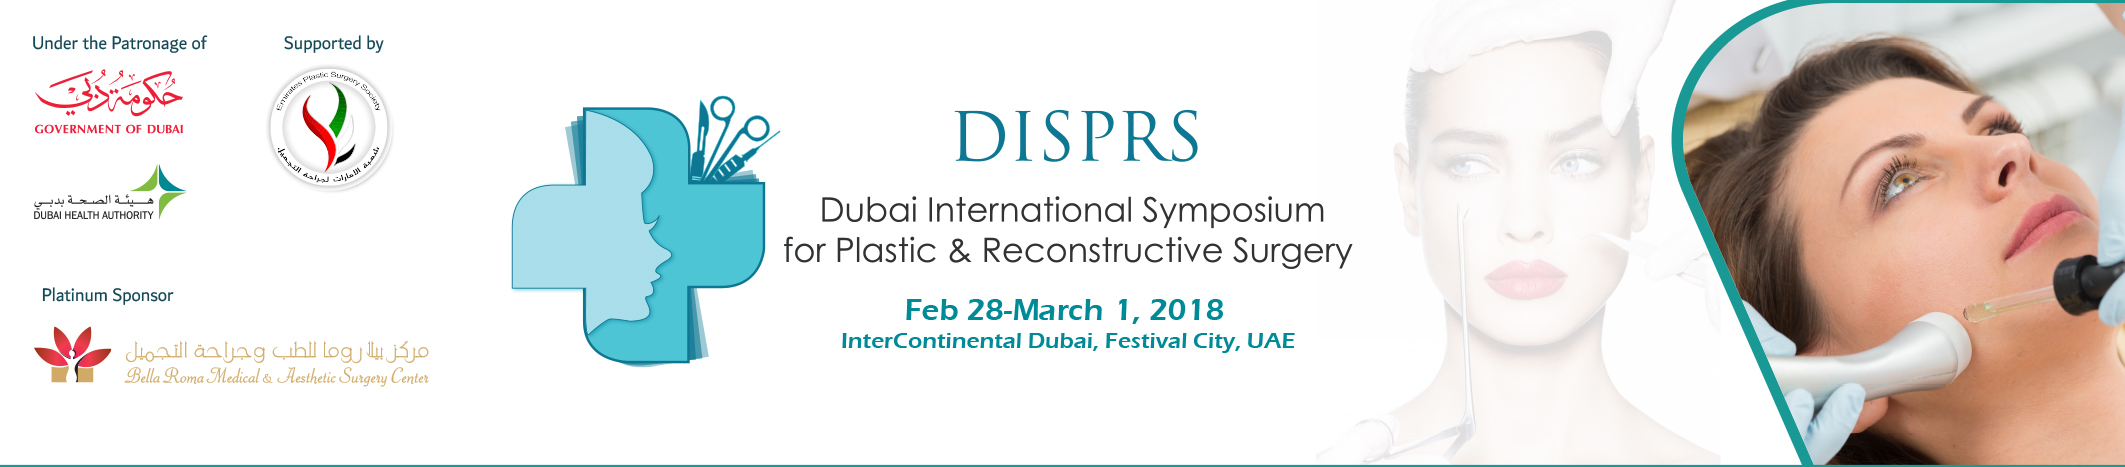 Dubai International Symposium for Plastic and Reconstructive Surgery